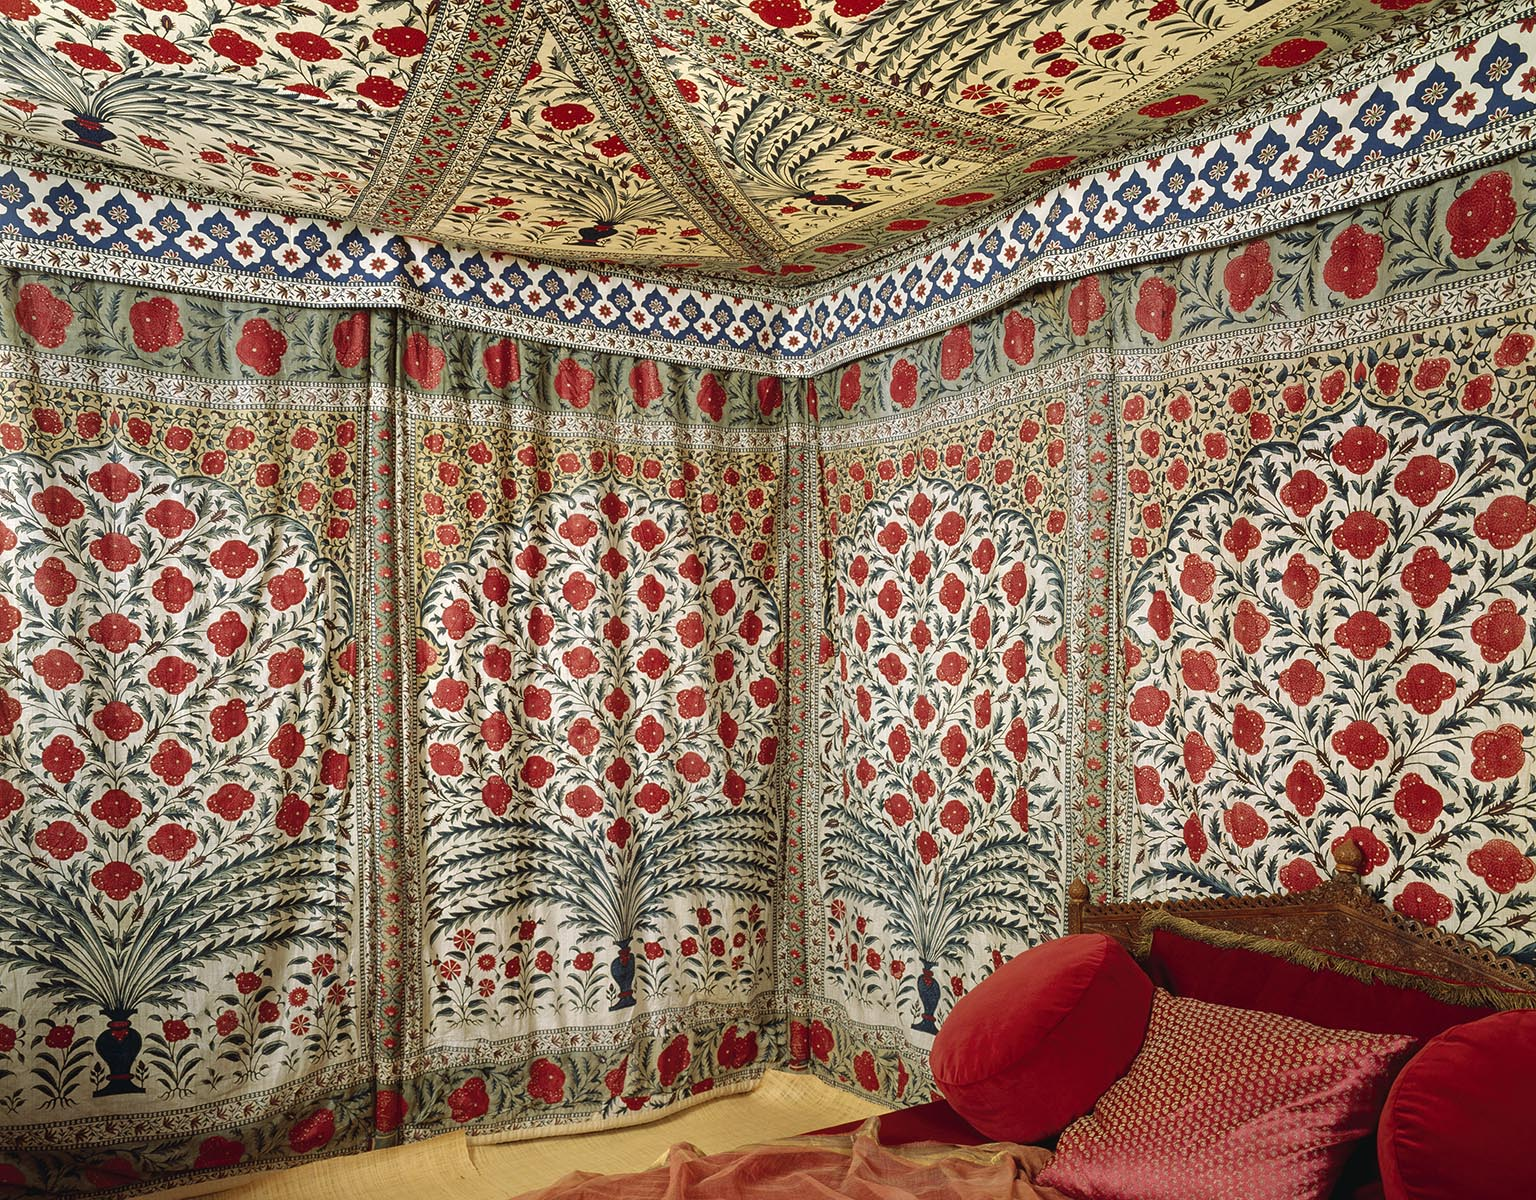 Tent of Tipu Sahib ©Powis Castle and Garden